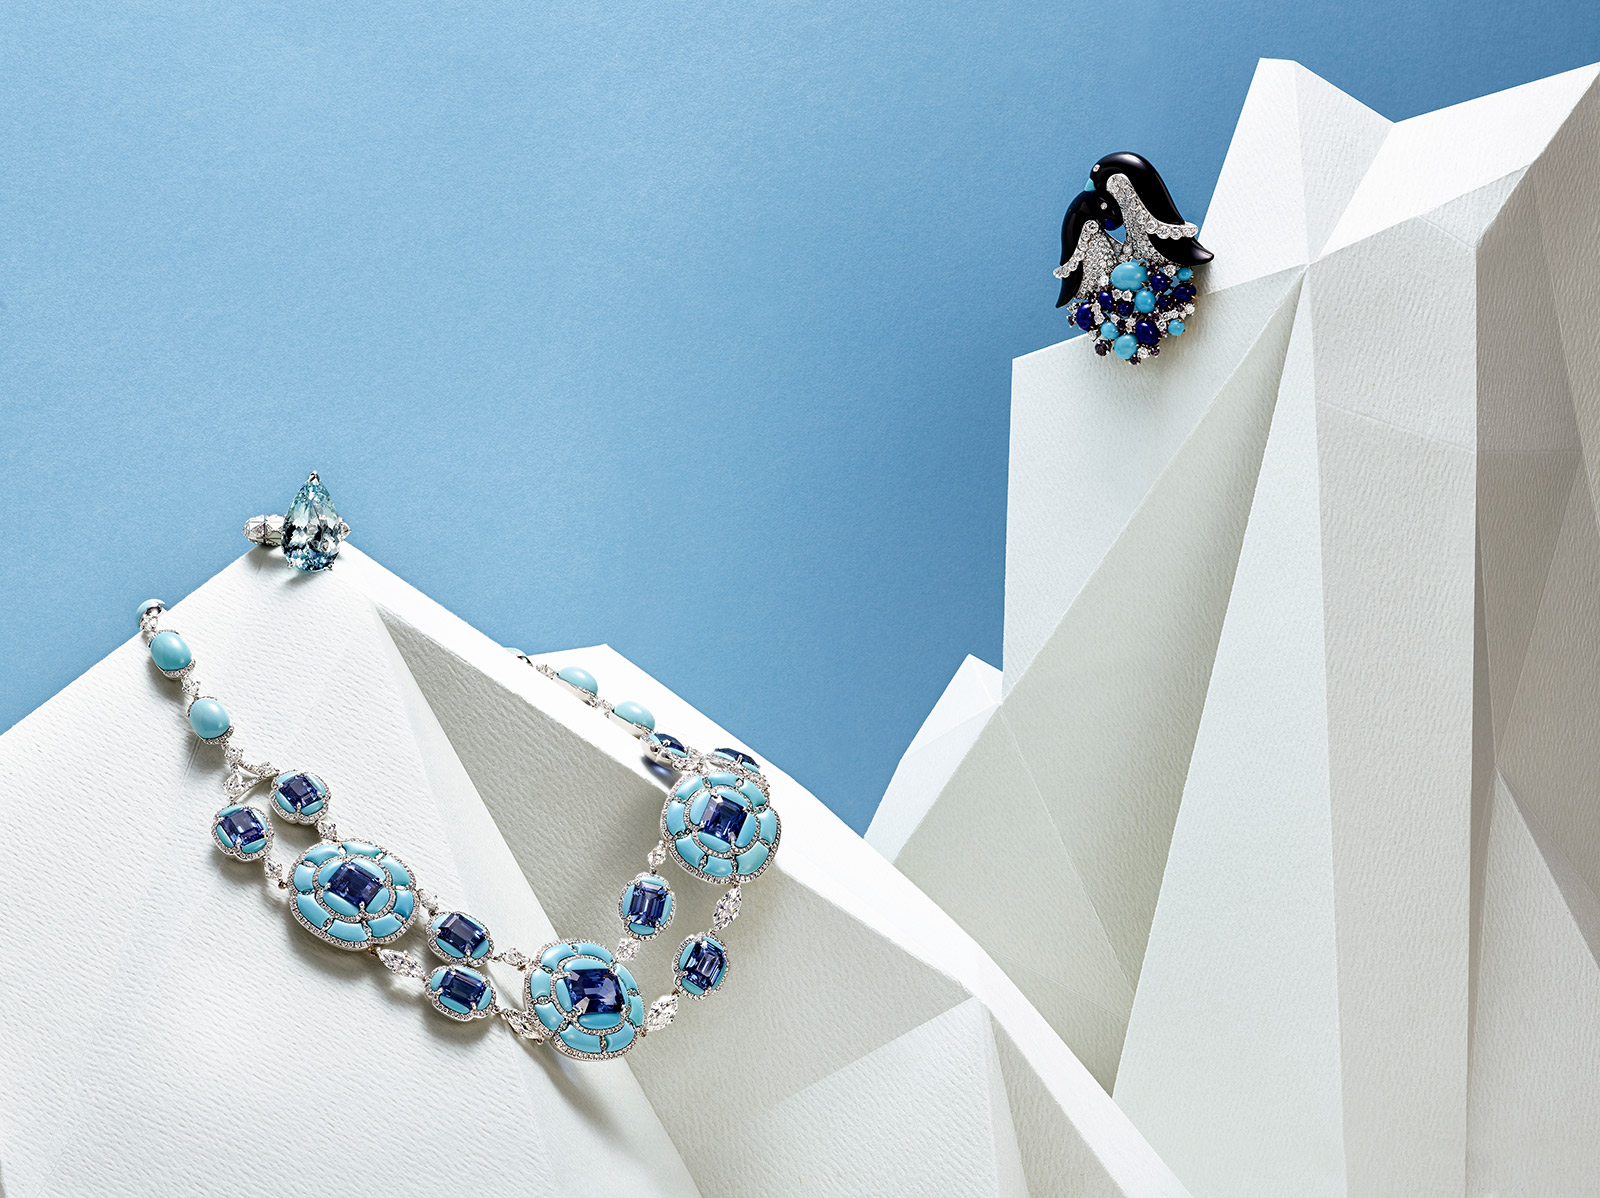 From left to right: Boghossian necklace with ceylon sapphires, turquoise and diamonds in white gold, Sarah Ho 'Pear Drop' ring with 16.30ct aquamarine, diamonds and white enamel on white gold, Van Cleef&Arpels 'Penguins' clip with turquoise, lapis lazuli, sapphires, onyx and diamonds in yellow and white gold